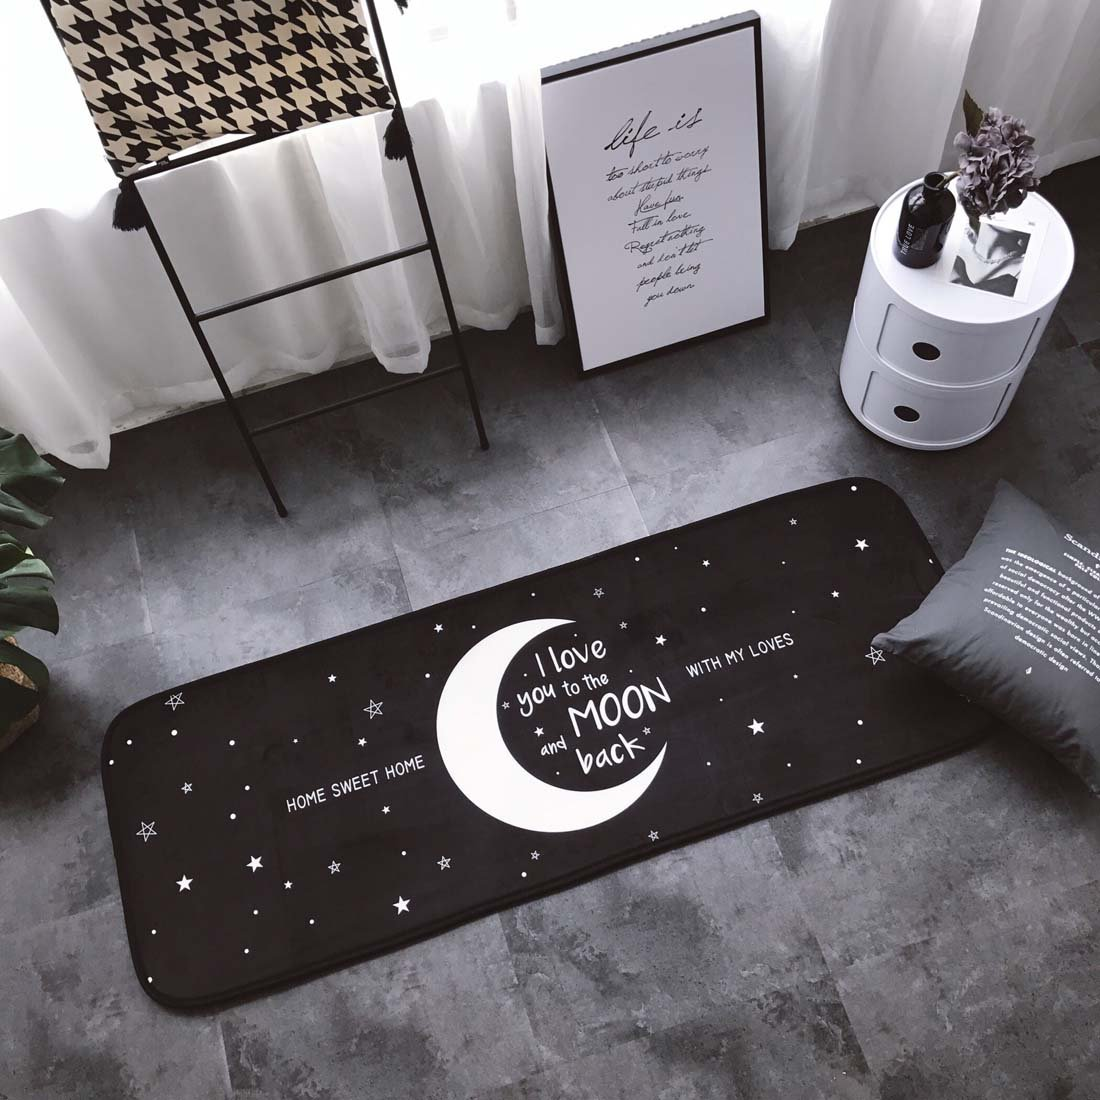 Home and Kitchen Rugs Door Mat Moon Sweet Home Non Slip/Skip Runner Decorative Entrance Floor Carpet for Bathroom Bedroom-I Love You To The Moon And Back